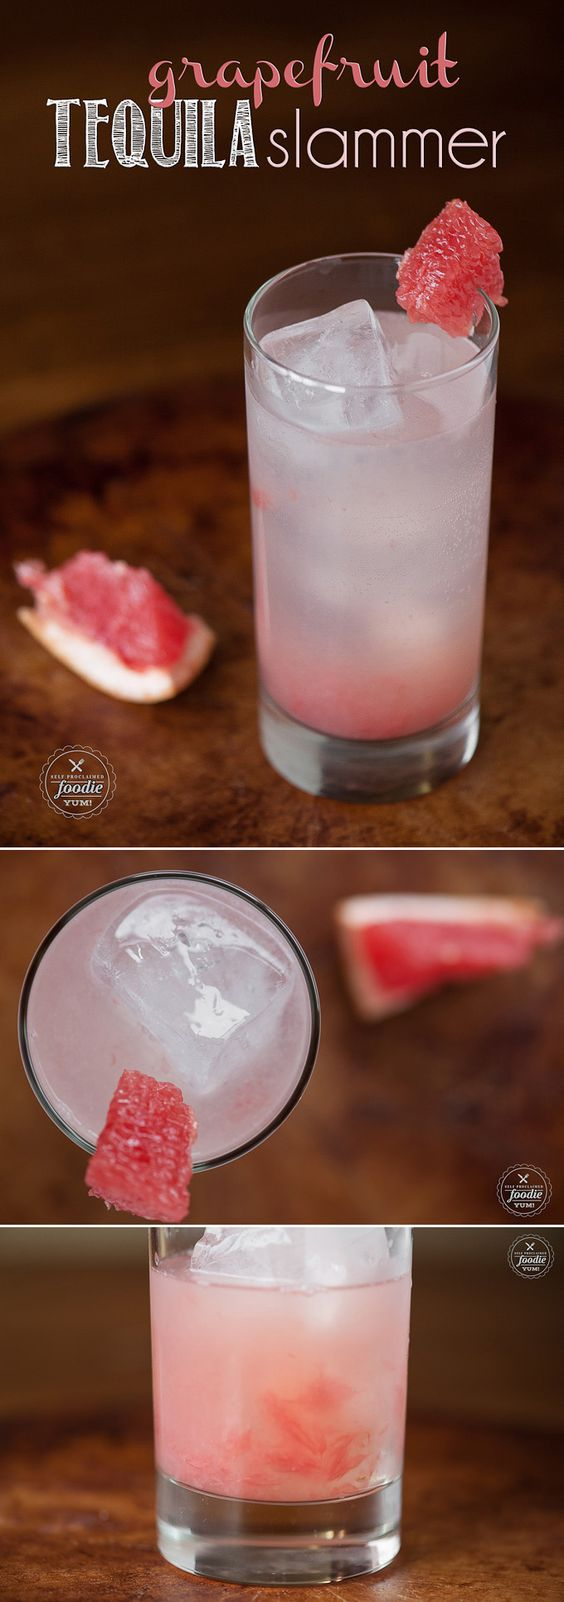 Make a quick and easy cocktail with one of winter's best fruits and enjoy a refreshing Grapefruit Tequila Slammer.